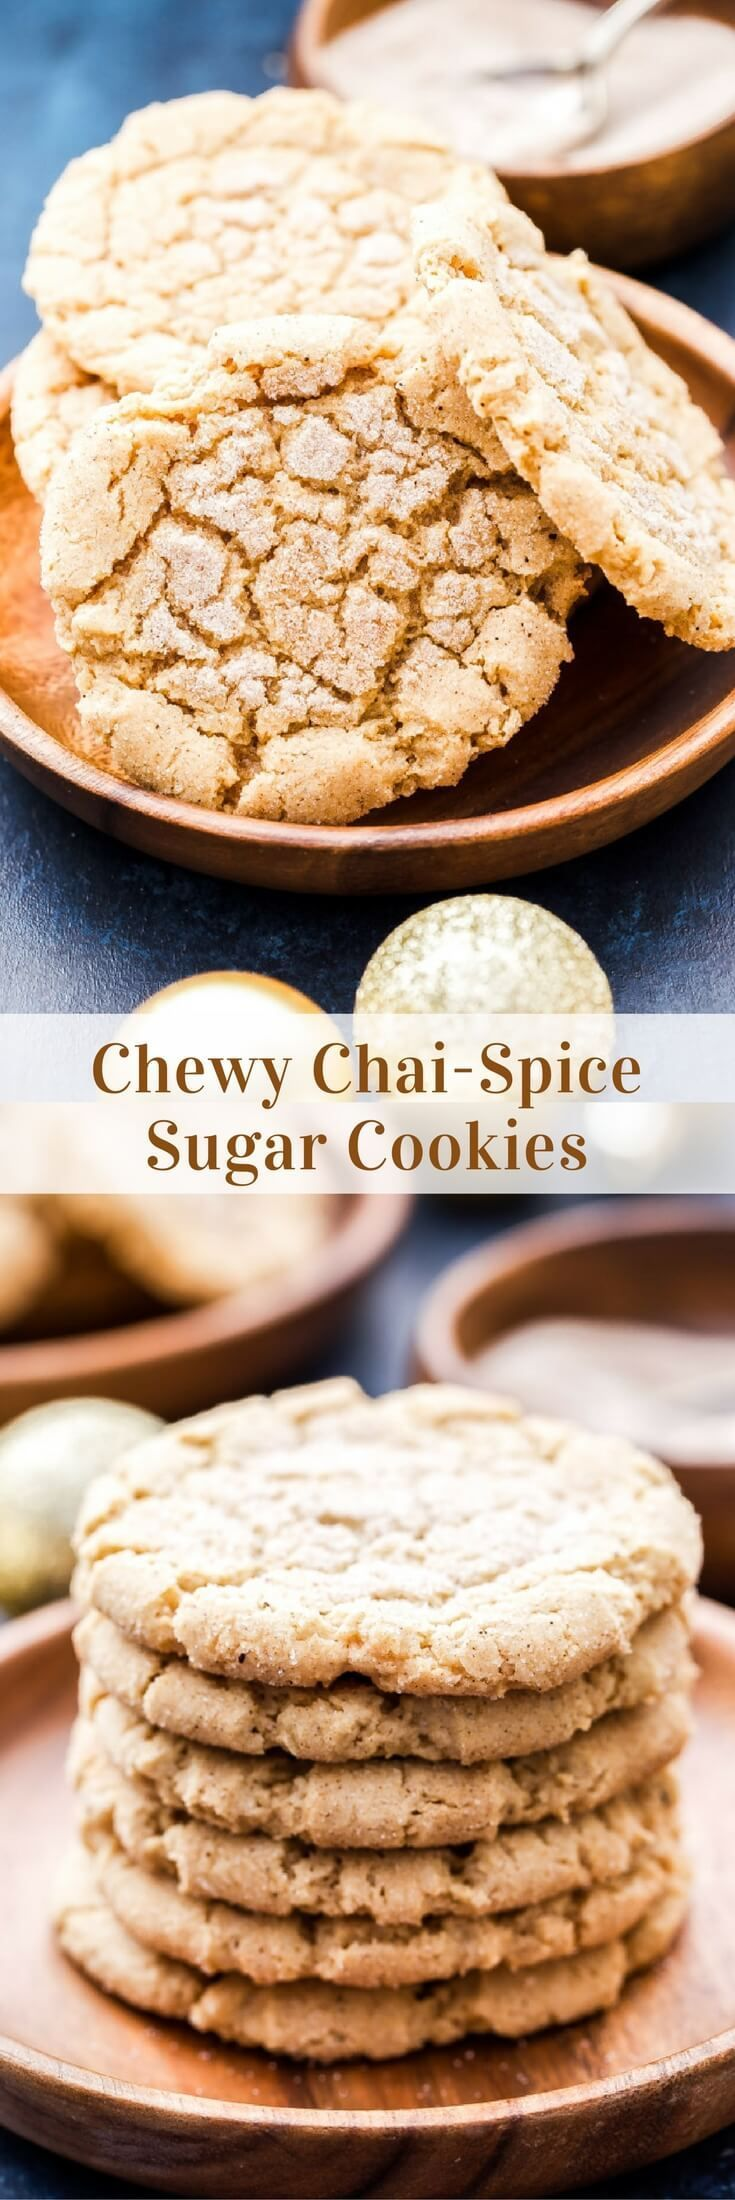 Chewy Chua Spice Sugar Cookies -- all dressed up for the holidays! -crisp edges, soft & chewy in the middle & plenty of chai-spice, perfection.